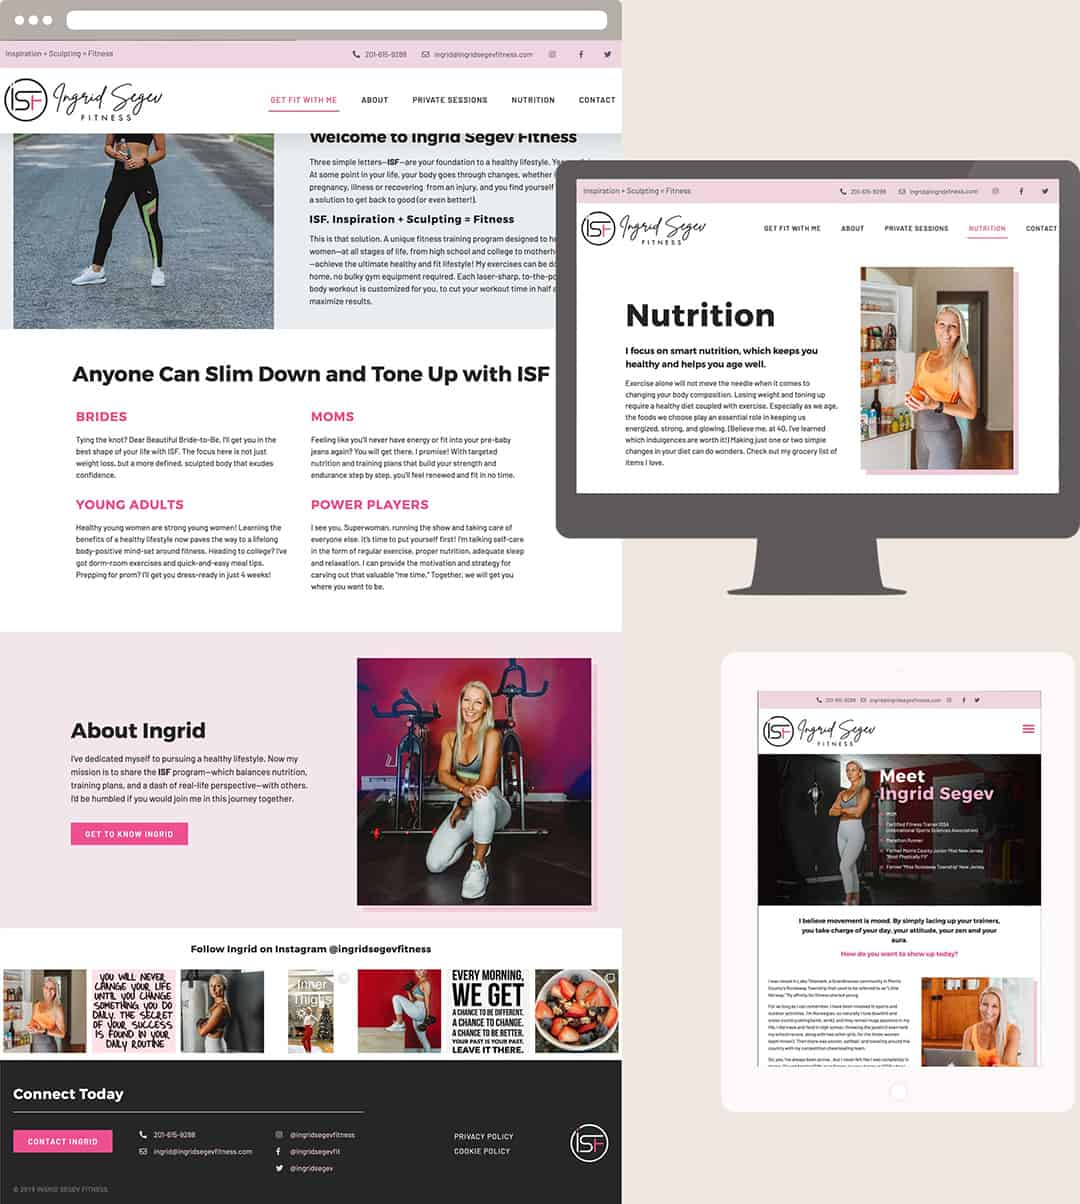 Ingrid Segev Fitness website design shown in browser, desktop and tablet views.